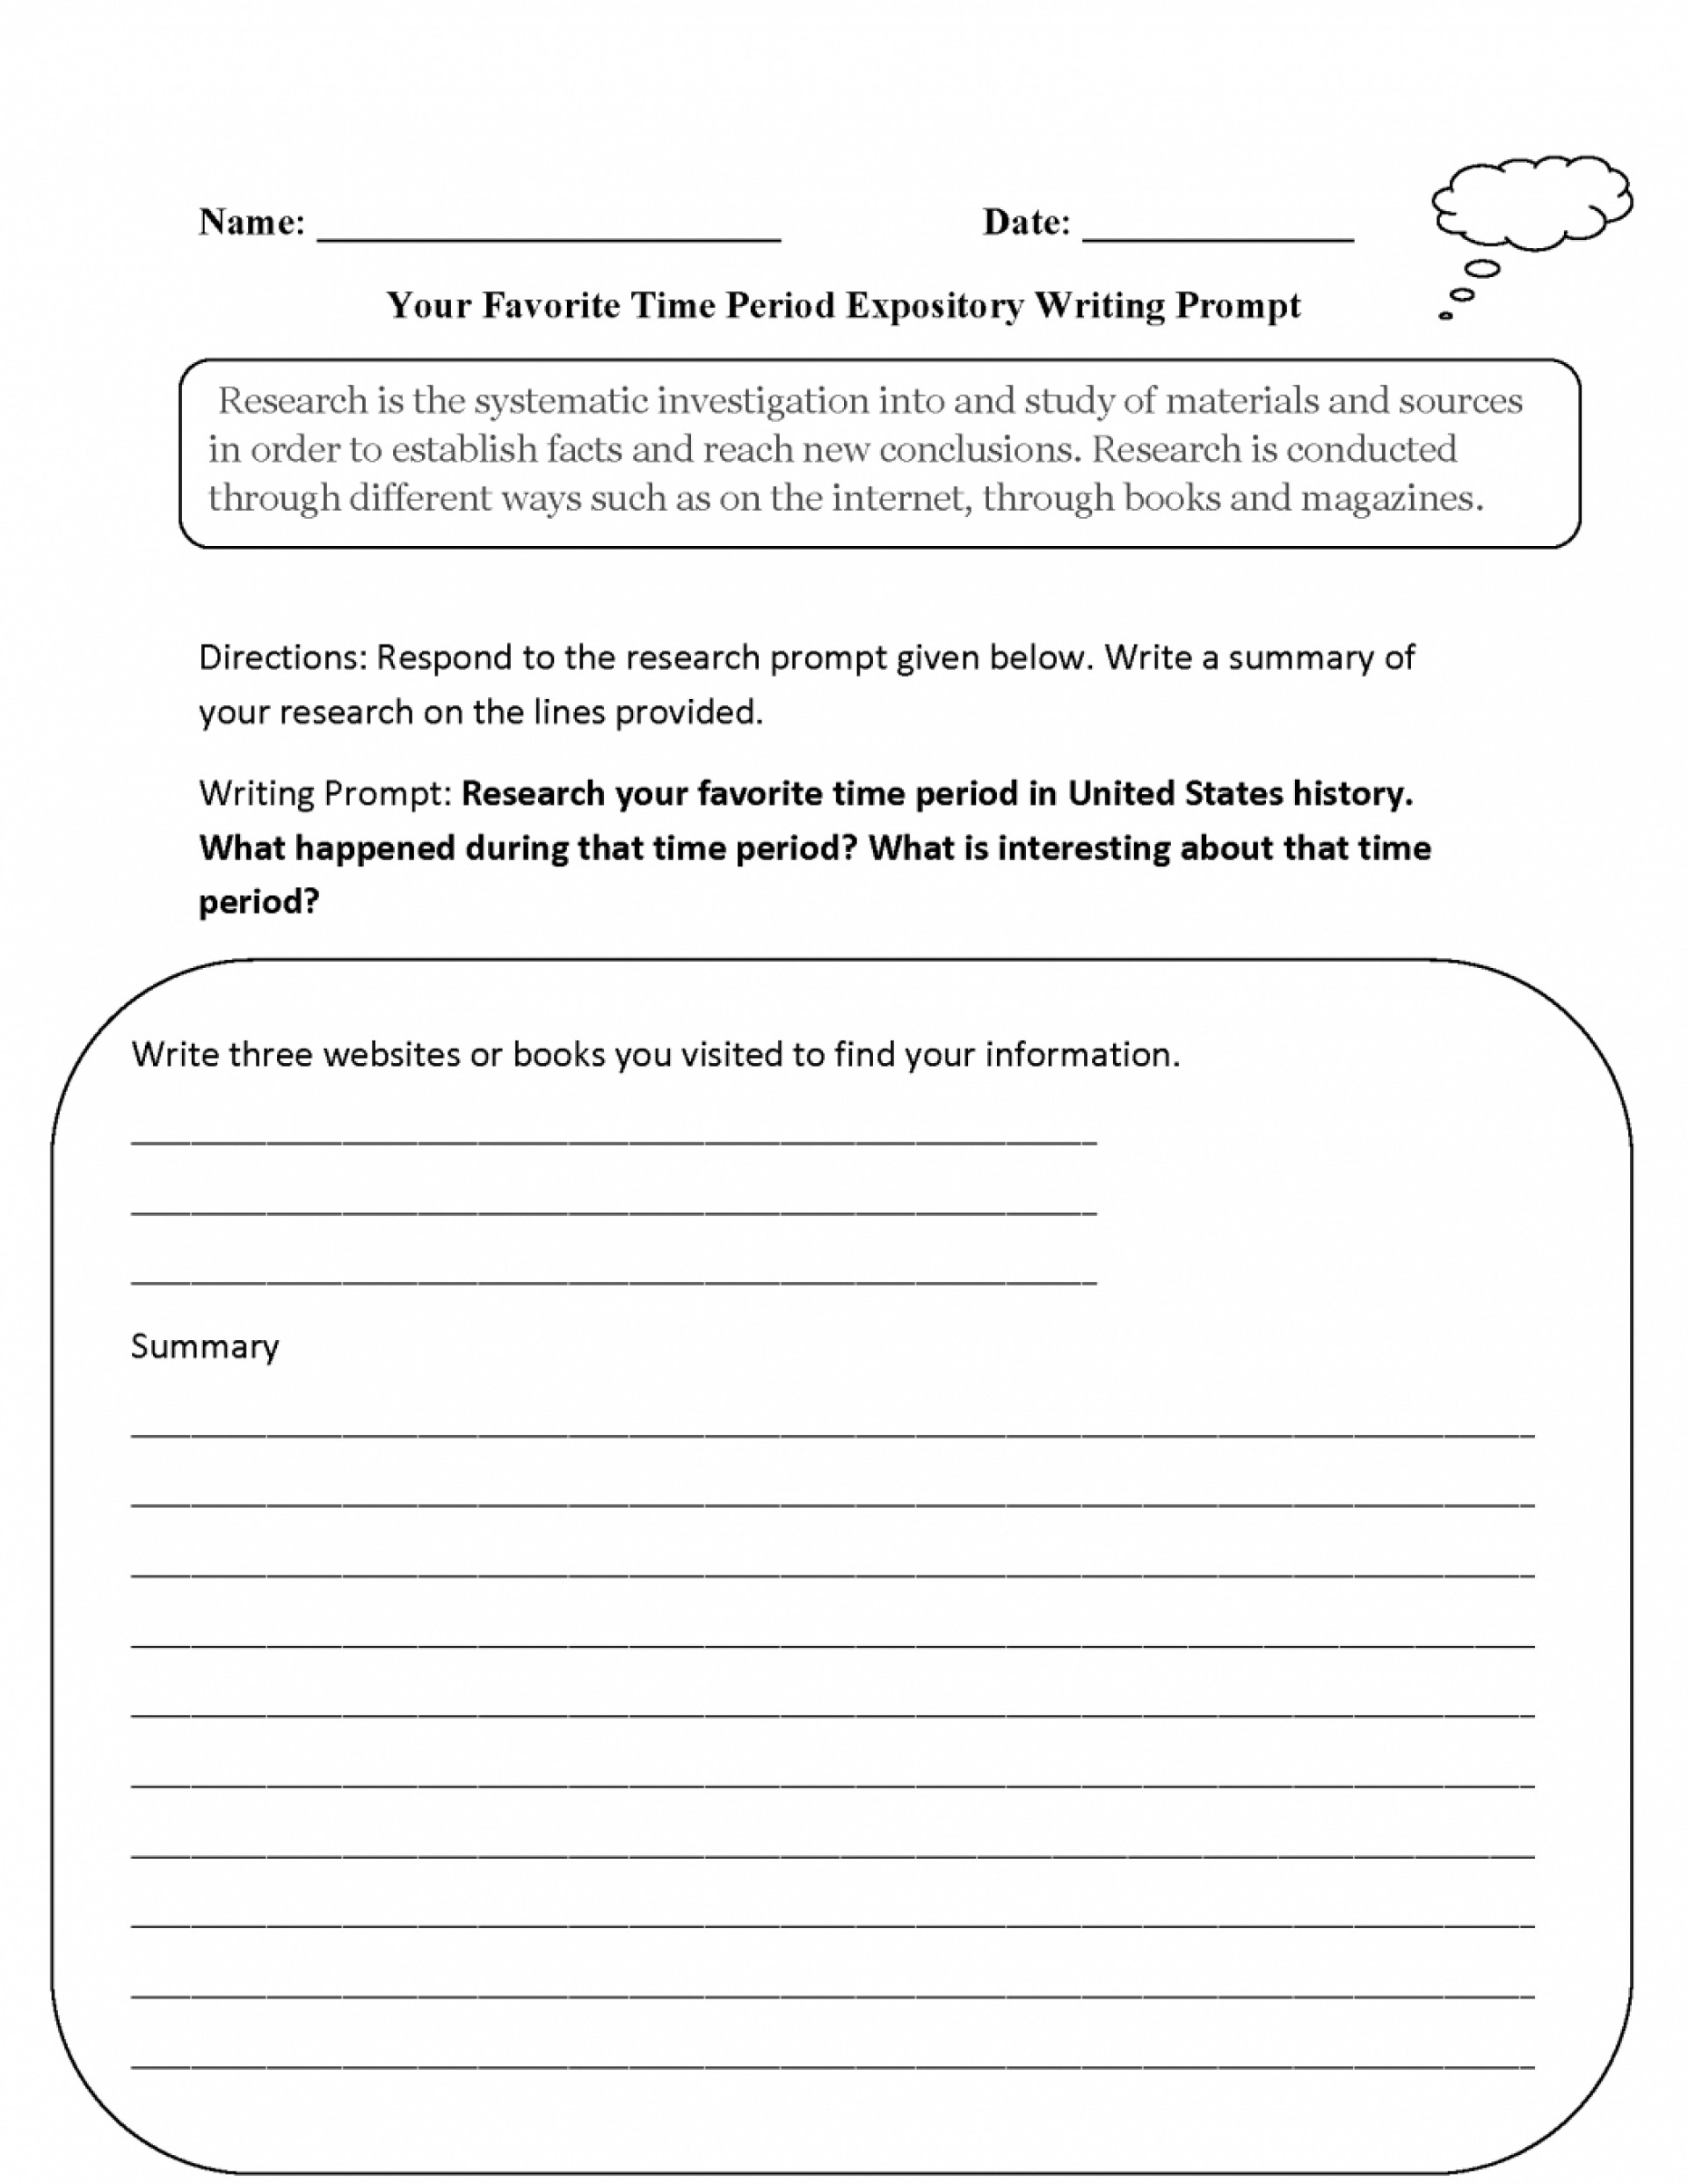 018 Essay Example Good Informative Topics Prompts Favorite Time Period Expository Writing P To Write An On The Topic Of Immigration Remarkable Paper For College Middle School 1920